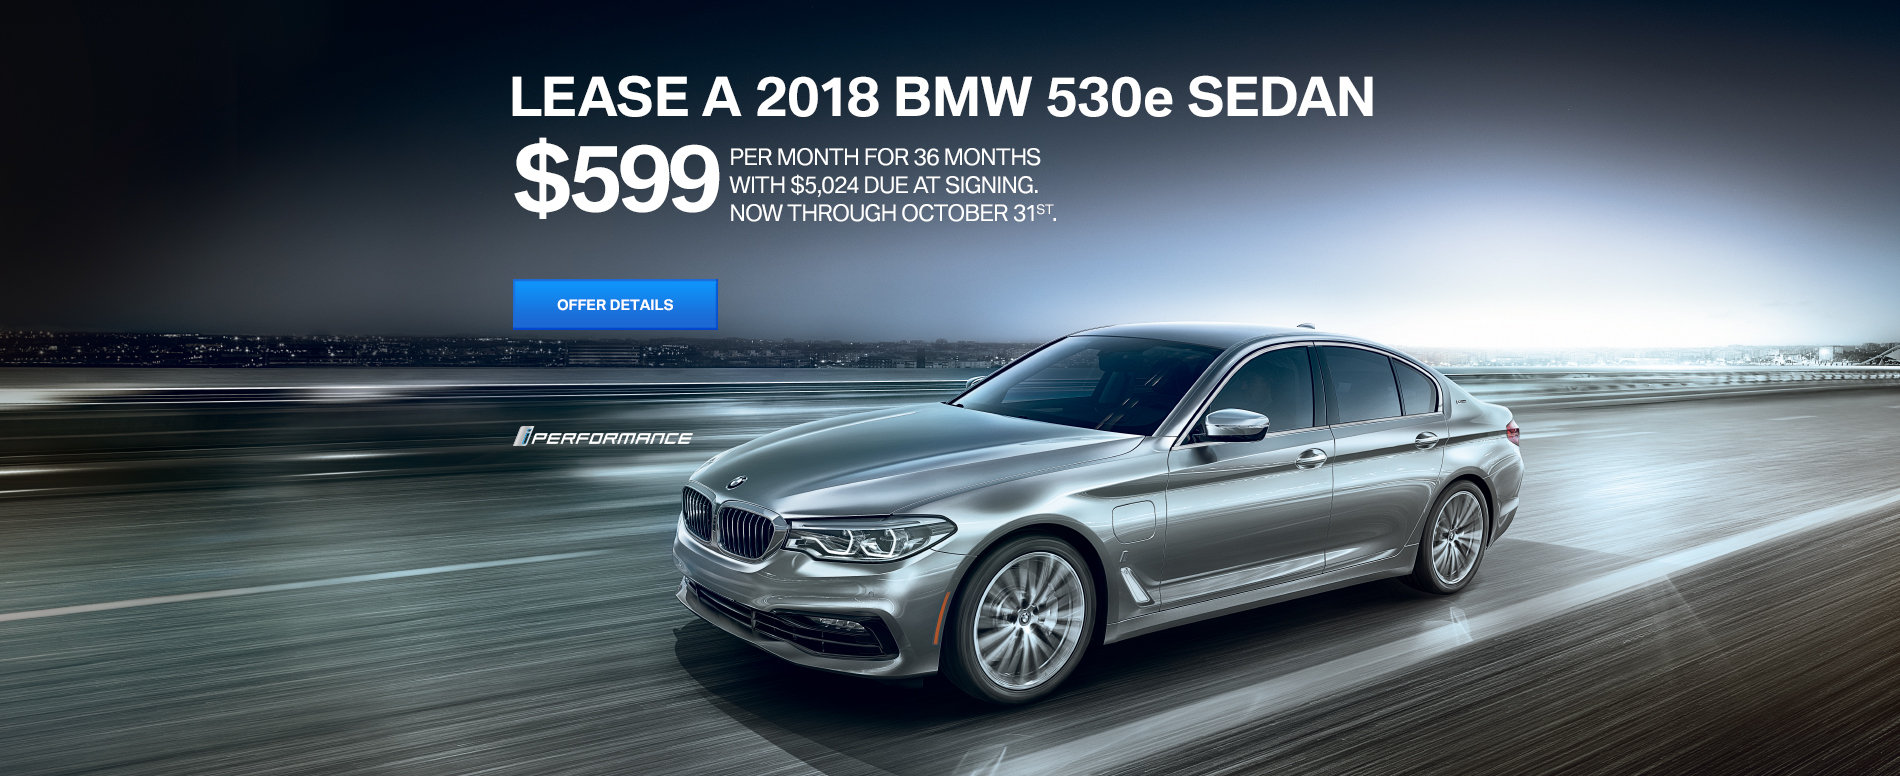 LEASE A 2018 BMW 530e iPERFORMANCE FOR $599 /MO FOR 36 MONTHS WI